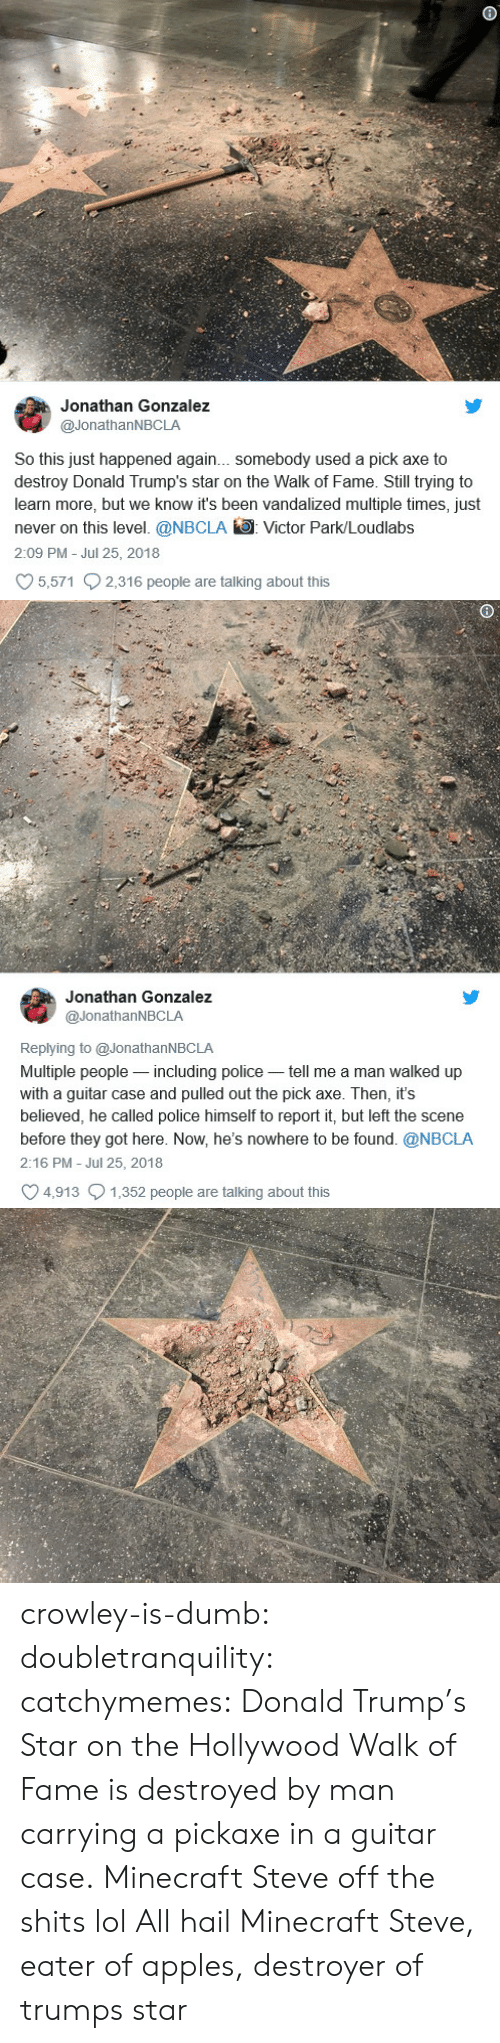 The Walk: Jonathan Gonzalez  @JonathanNBCLA  So this just happened again... somebody used a pick axe to  destroy Donald Trump's star on the Walk of Fame. Still trying to  learn more, but we know it's been vandalized multiple times, just  never on this level. @NBCLA Victor Park/Loudlabs  2:09 PM Jul 25, 2018  5,571 2,316 people are talking about this   Jonathan Gonzalez  @JonathanNBCLA  Replying to @JonathanNBCLA  Multiple people-including police tell me a man walked up  with a guitar case and pulled out the pick axe. Then, it's  believed, he called police himself to report it, but left the scene  before they got here. Now, he's nowhere to be found. @NBCLA  2:16 PM - Jul 25, 2018  4,913 1,352 people are talking about this crowley-is-dumb:  doubletranquility: catchymemes:  Donald Trump's Star on the Hollywood Walk of Fame is destroyed by man carrying a pickaxe in a guitar case.  Minecraft Steve off the shits lol   All hail Minecraft Steve, eater of apples, destroyer of trumps star